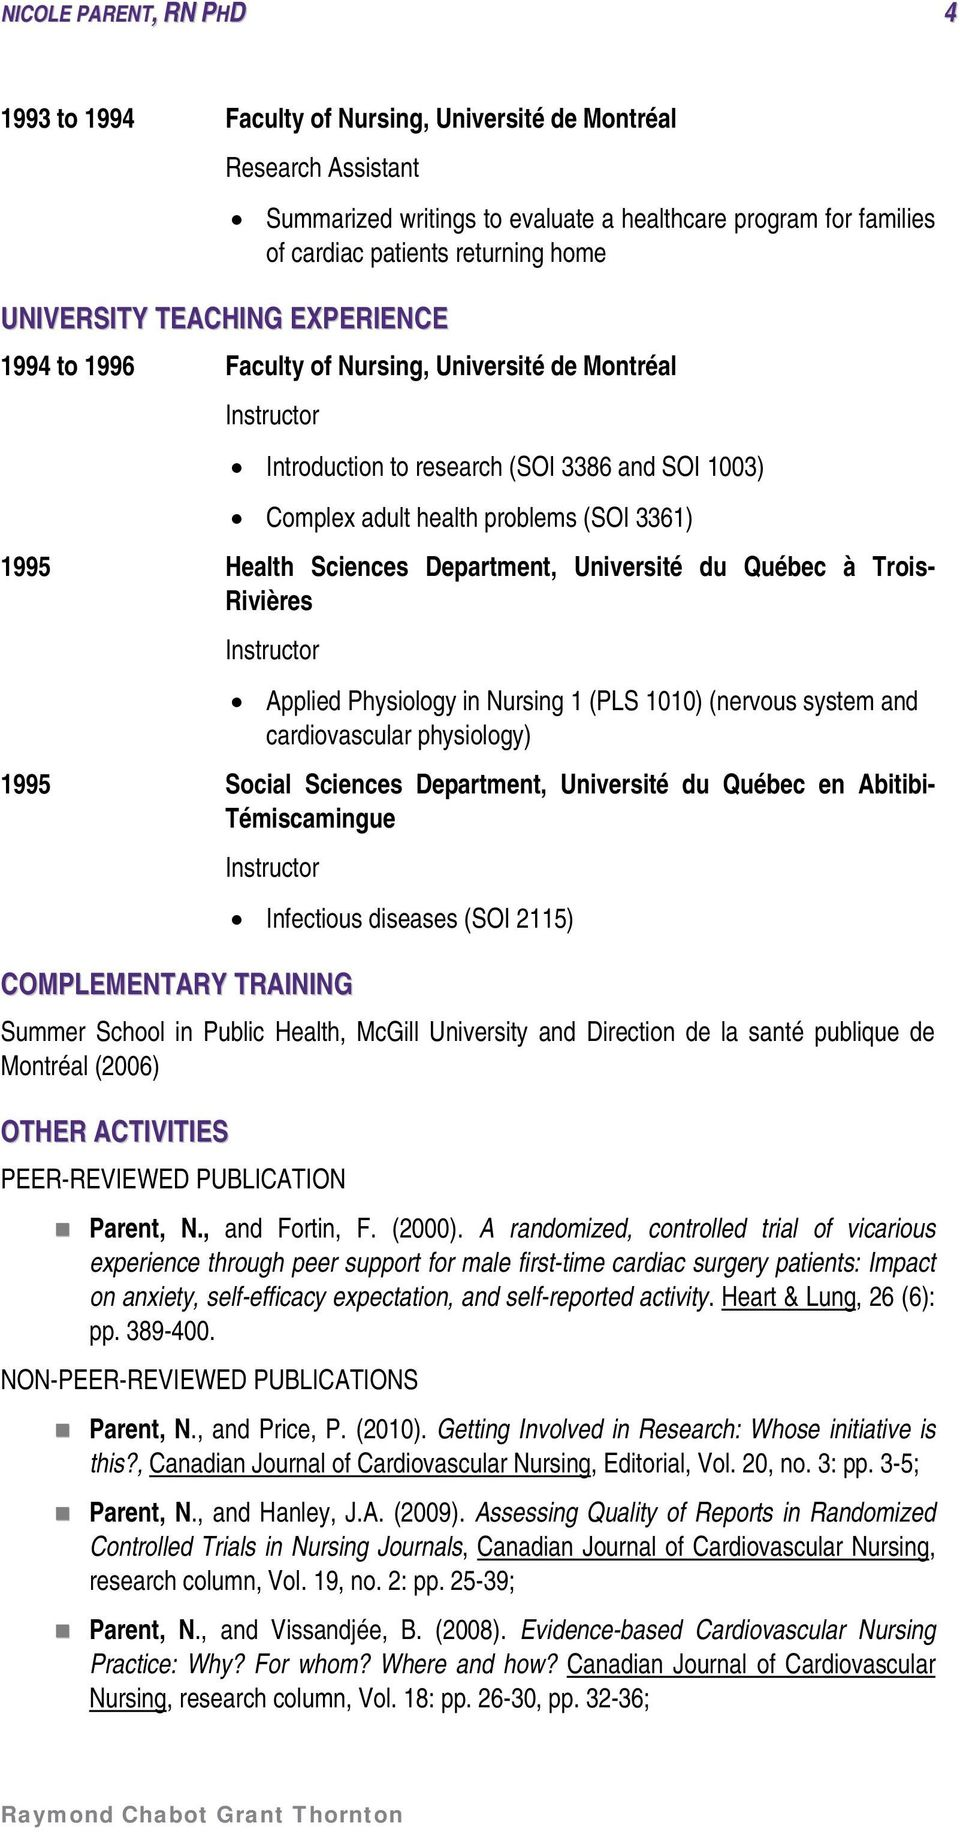 Health Sciences Department, Université du Québec à Trois- Rivières Instructor Applied Physiology in Nursing 1 (PLS 1010) (nervous system and cardiovascular physiology) 1995 Social Sciences